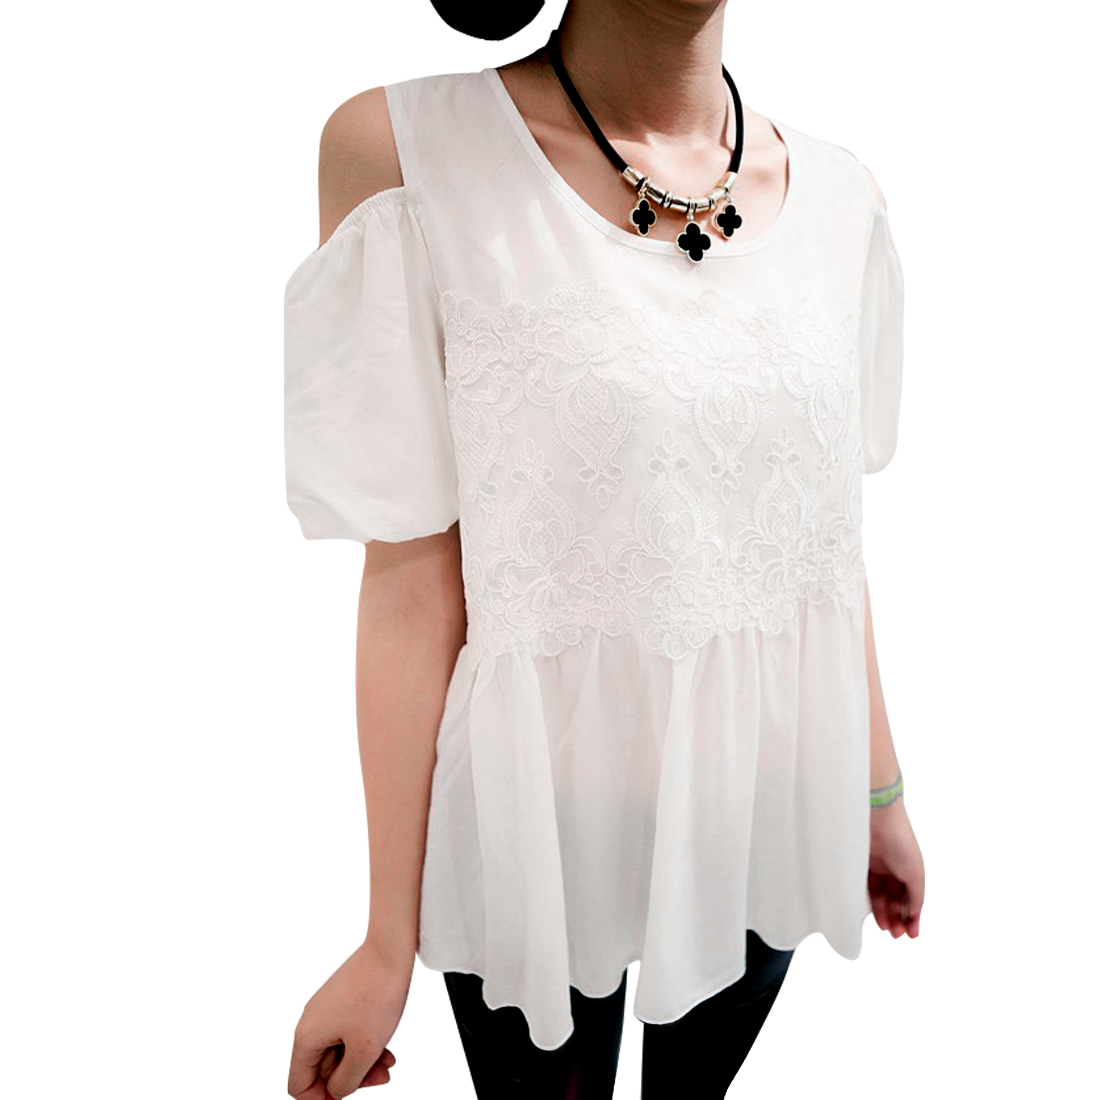 Lady White Round Neck Off-Shoulder Embellished Design Pullover Top XS